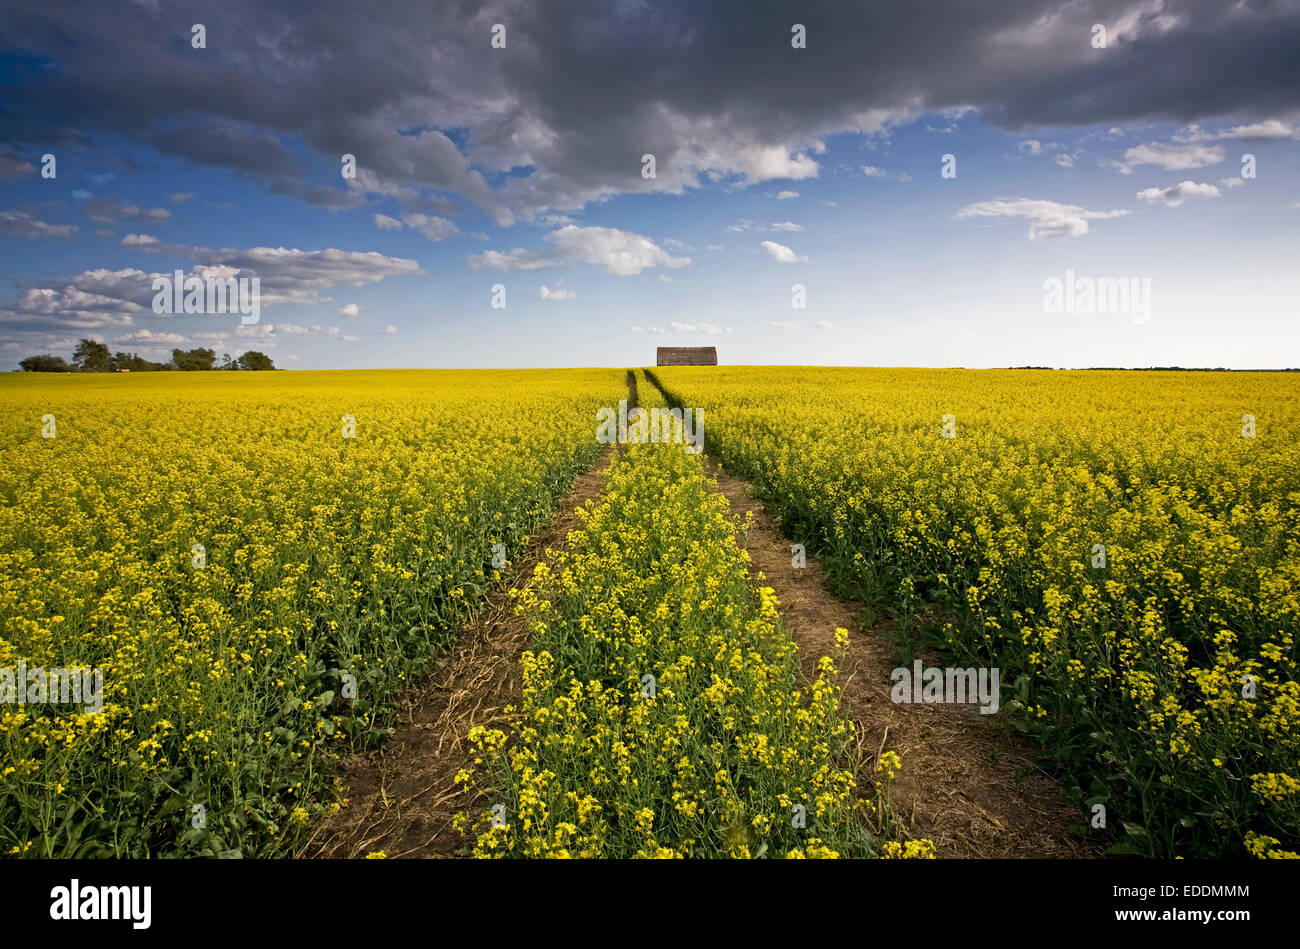 Canola Crops Stock Photos Canola Crops Stock Images Alamy